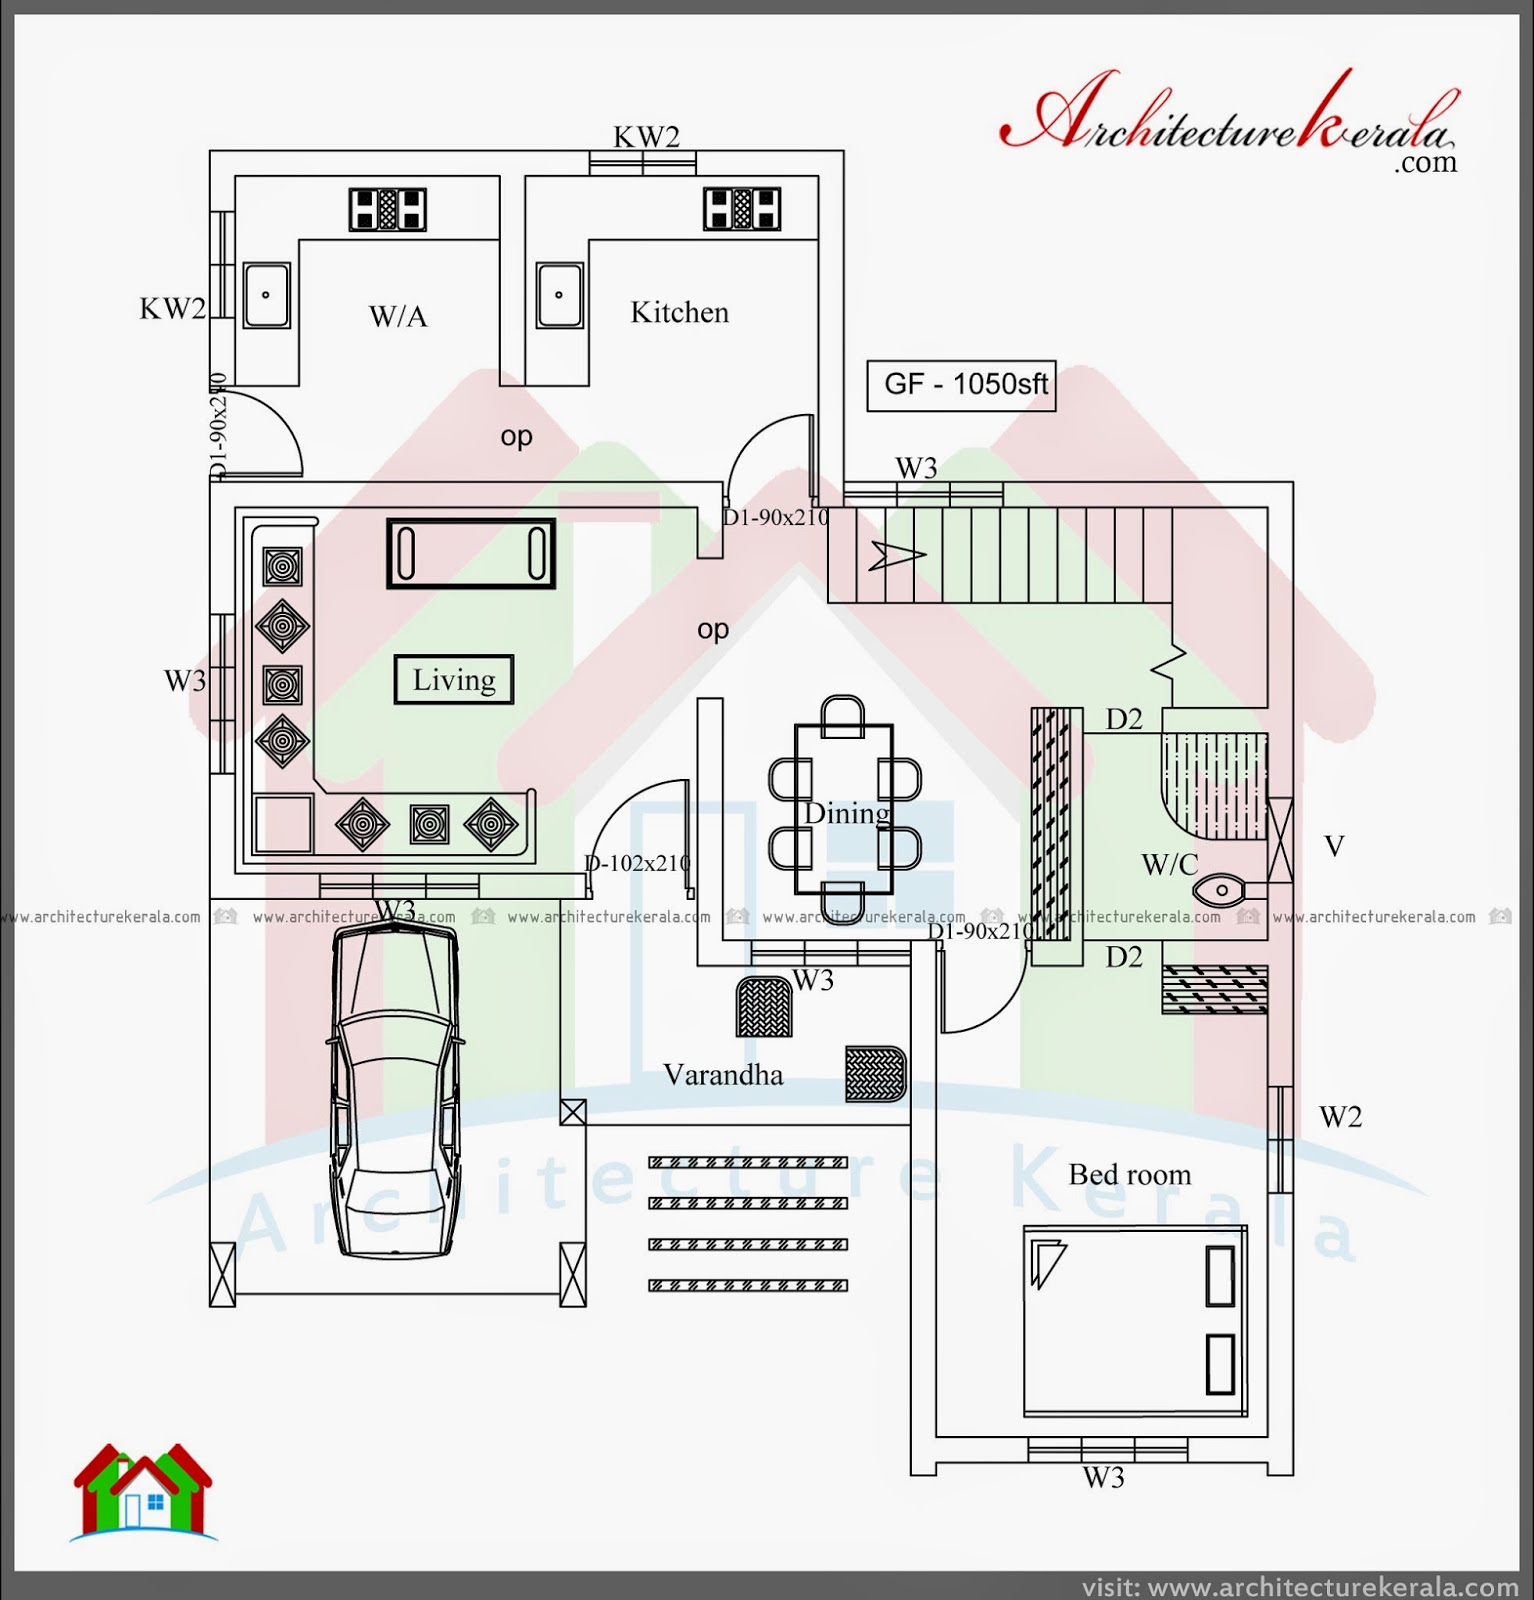 Three bedroom two storey house plan architecture kerala for Kerala house plan 3 bedroom